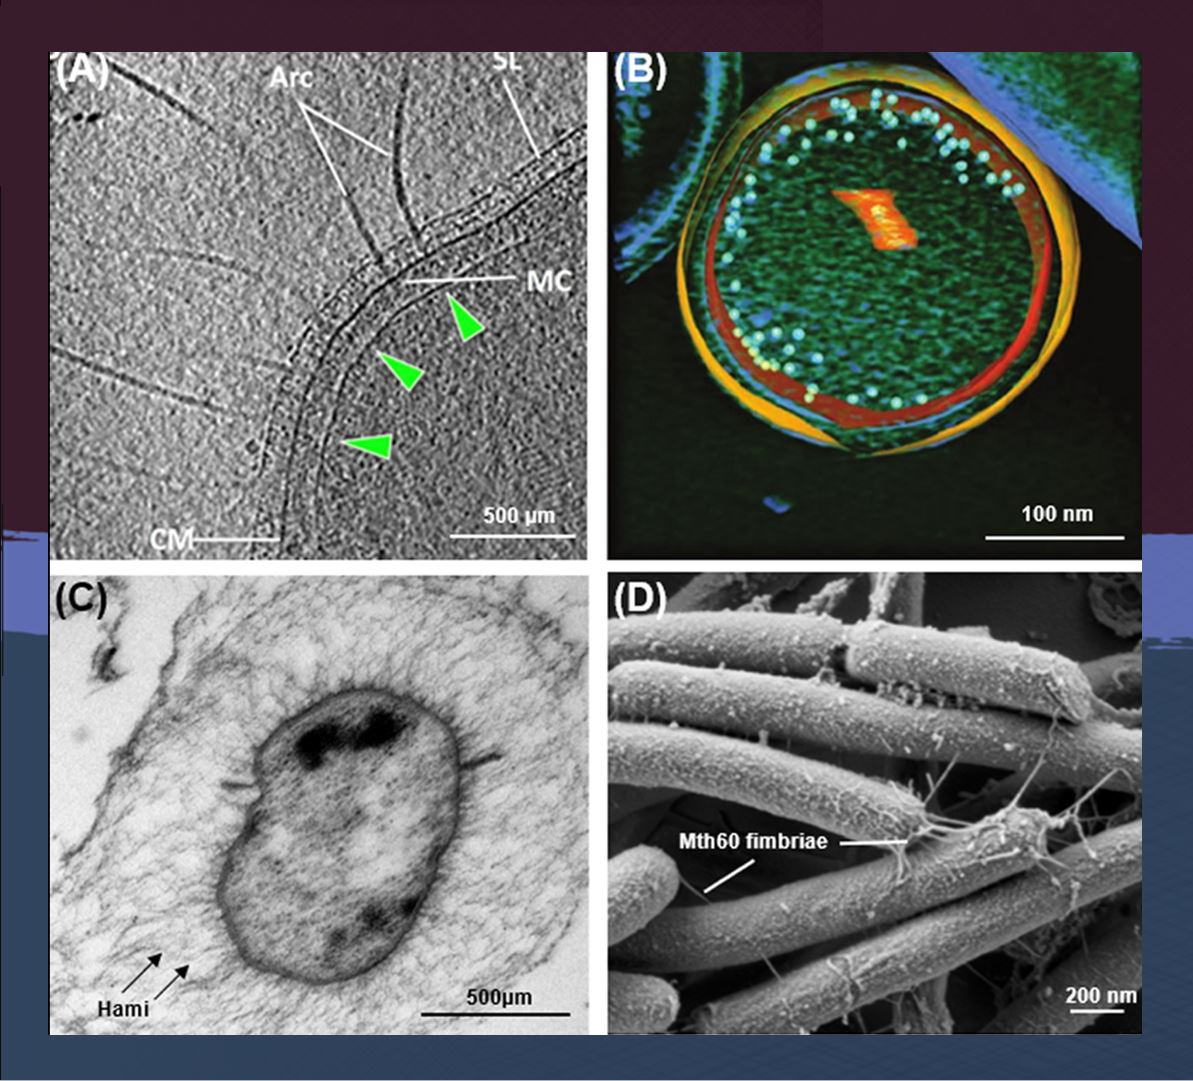 Prokaryotes Hashtag On Twitter Review Prokaryotic Cells It Features 9 Reviews The Latest Research Into Thethirddomainoflife Http Bitly Archaea2018 Microbiology Femsjournals Image